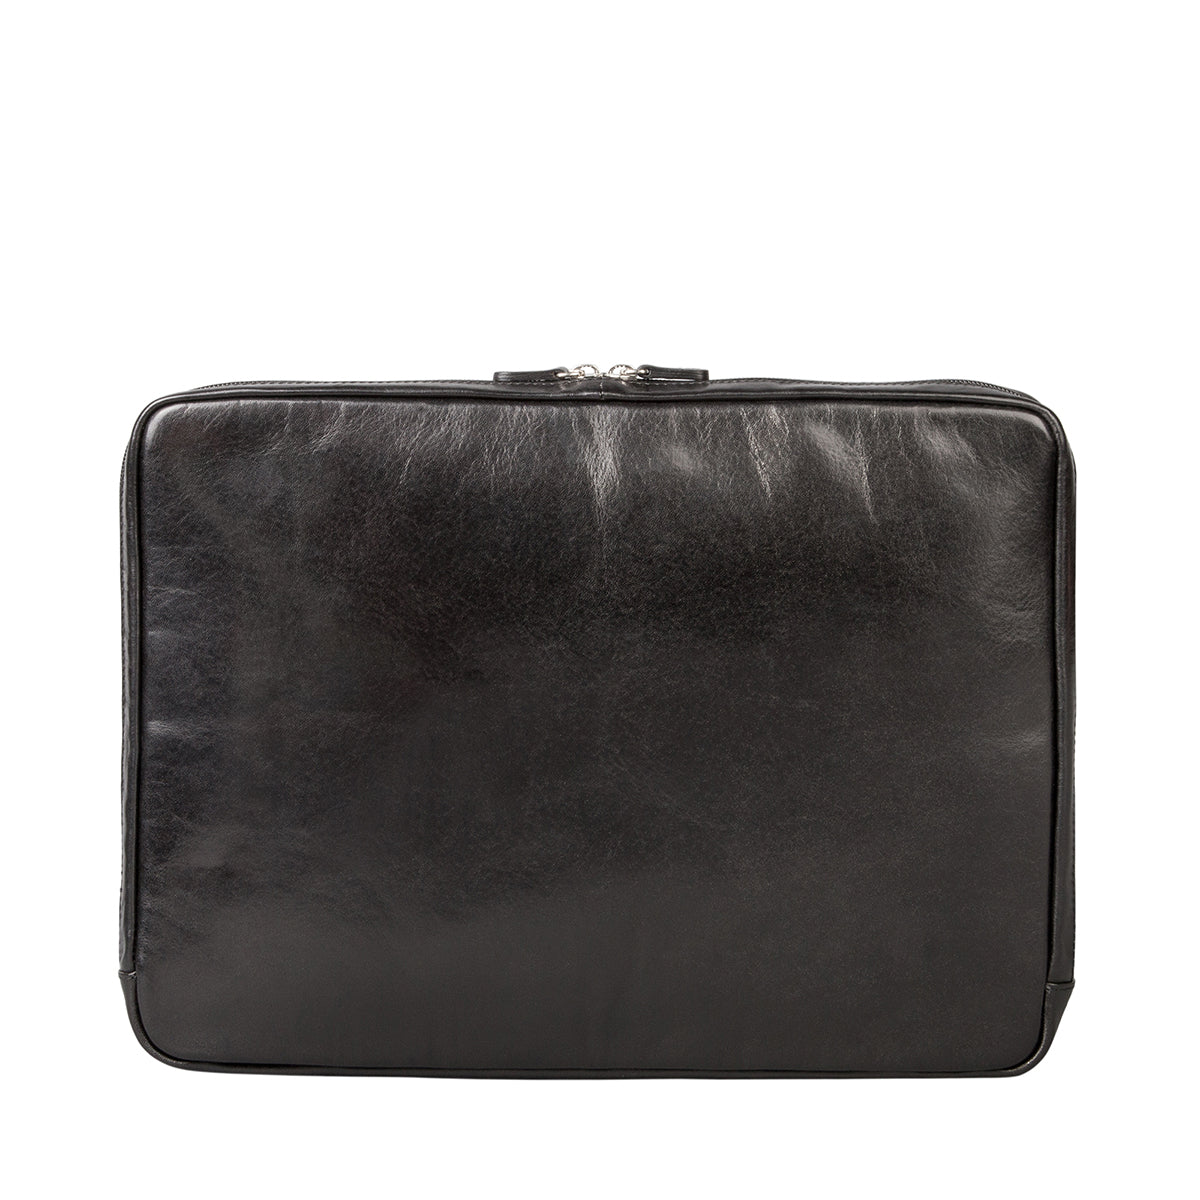 "Image 3 of the 'Verzino' Black Veg Tanned 15"" Leather Laptop Case"